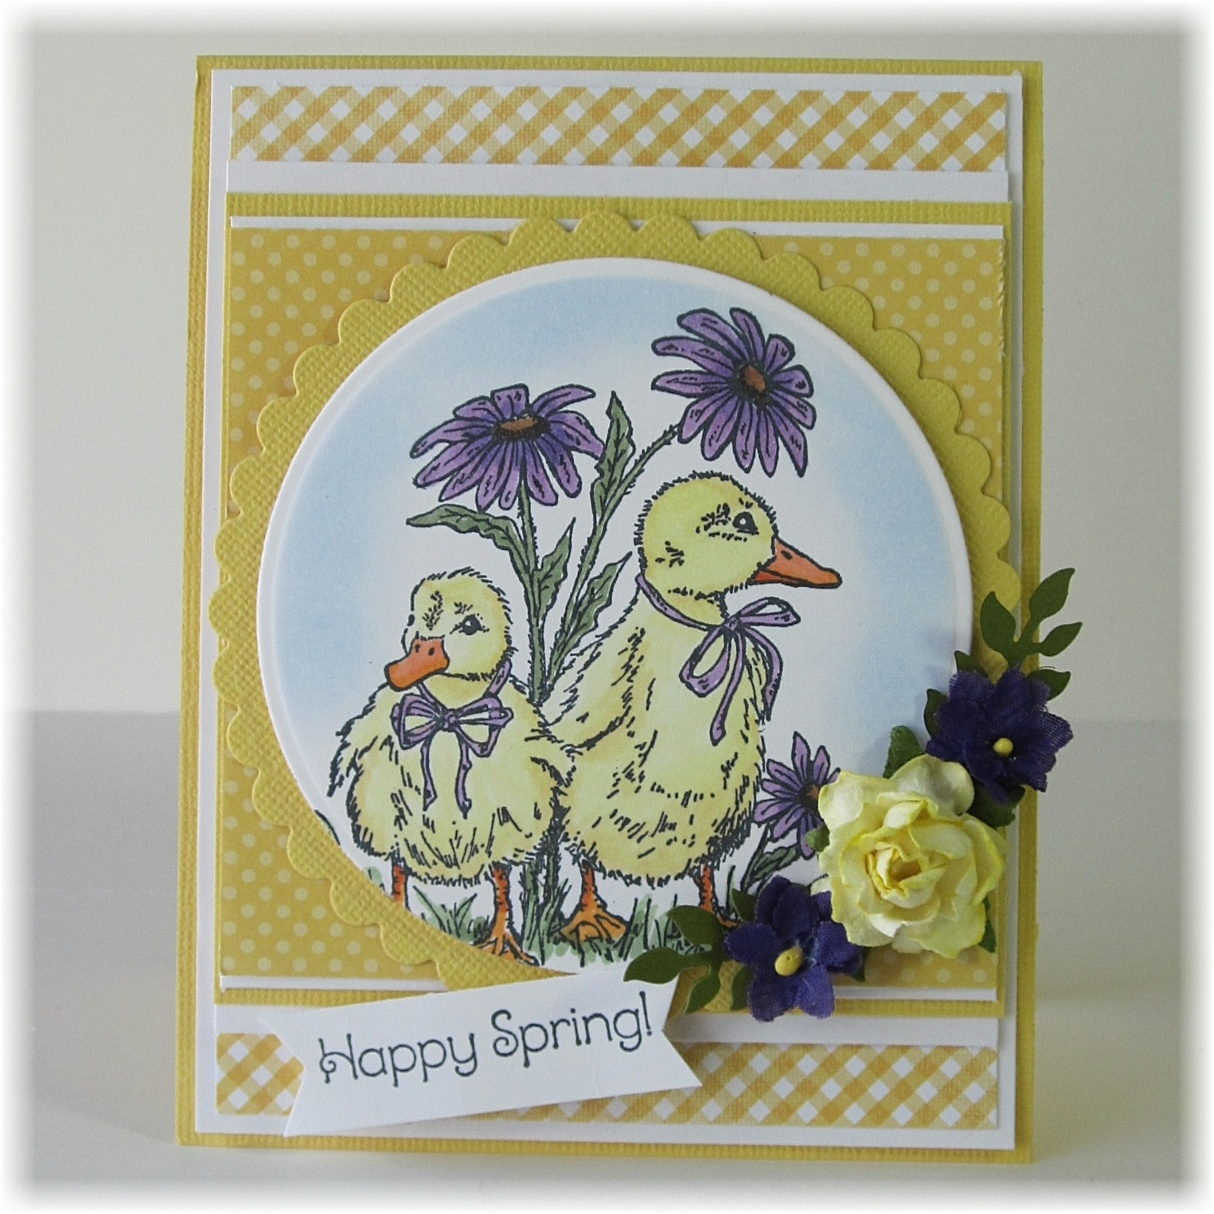 Stamps - North Coast Creations Happy Spring, ODBD Custom Fancy Foliage Die